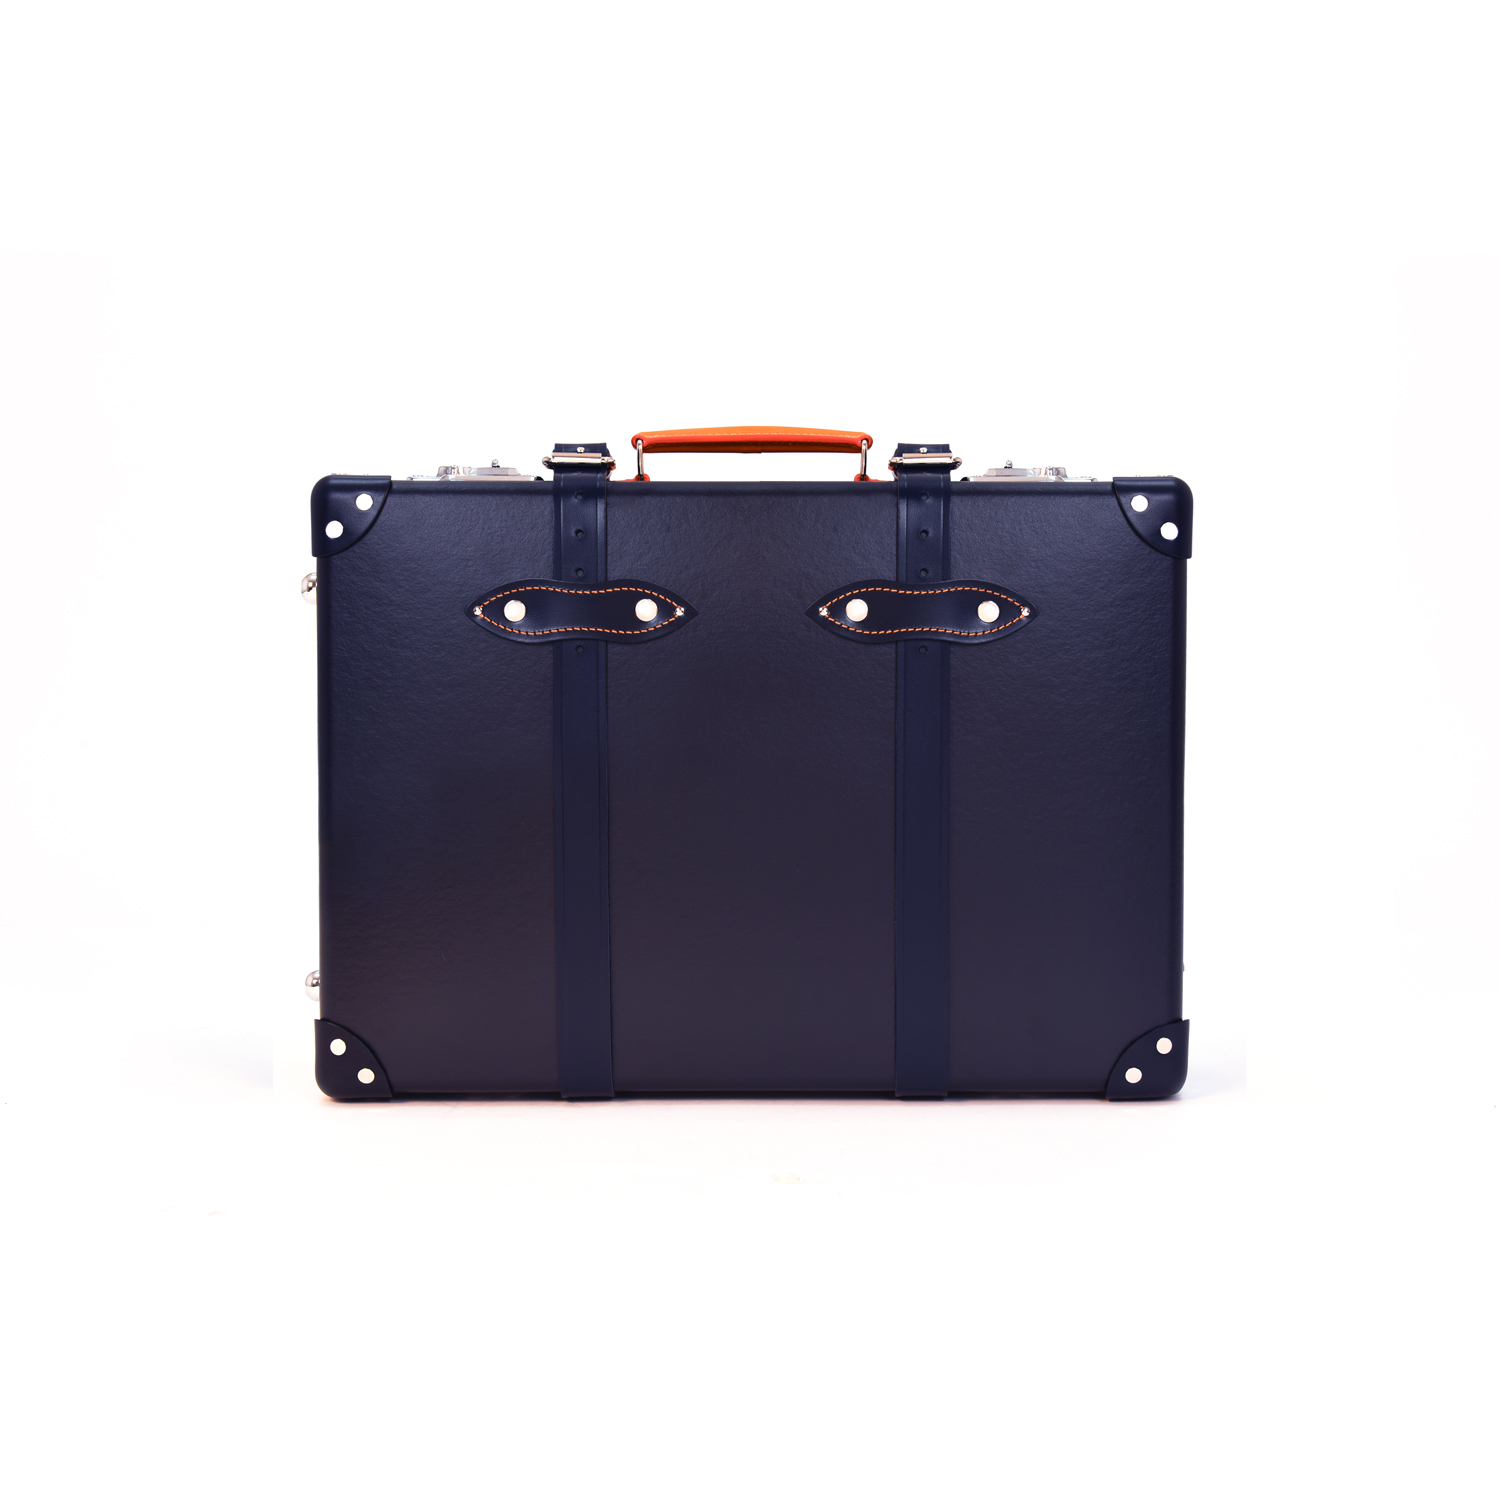 Globe-Trotter Toscana suitcase - £1,260 - Because every rakish gent needs a rakish suitcase to transport his rakish wardrobe around on his rakish travels